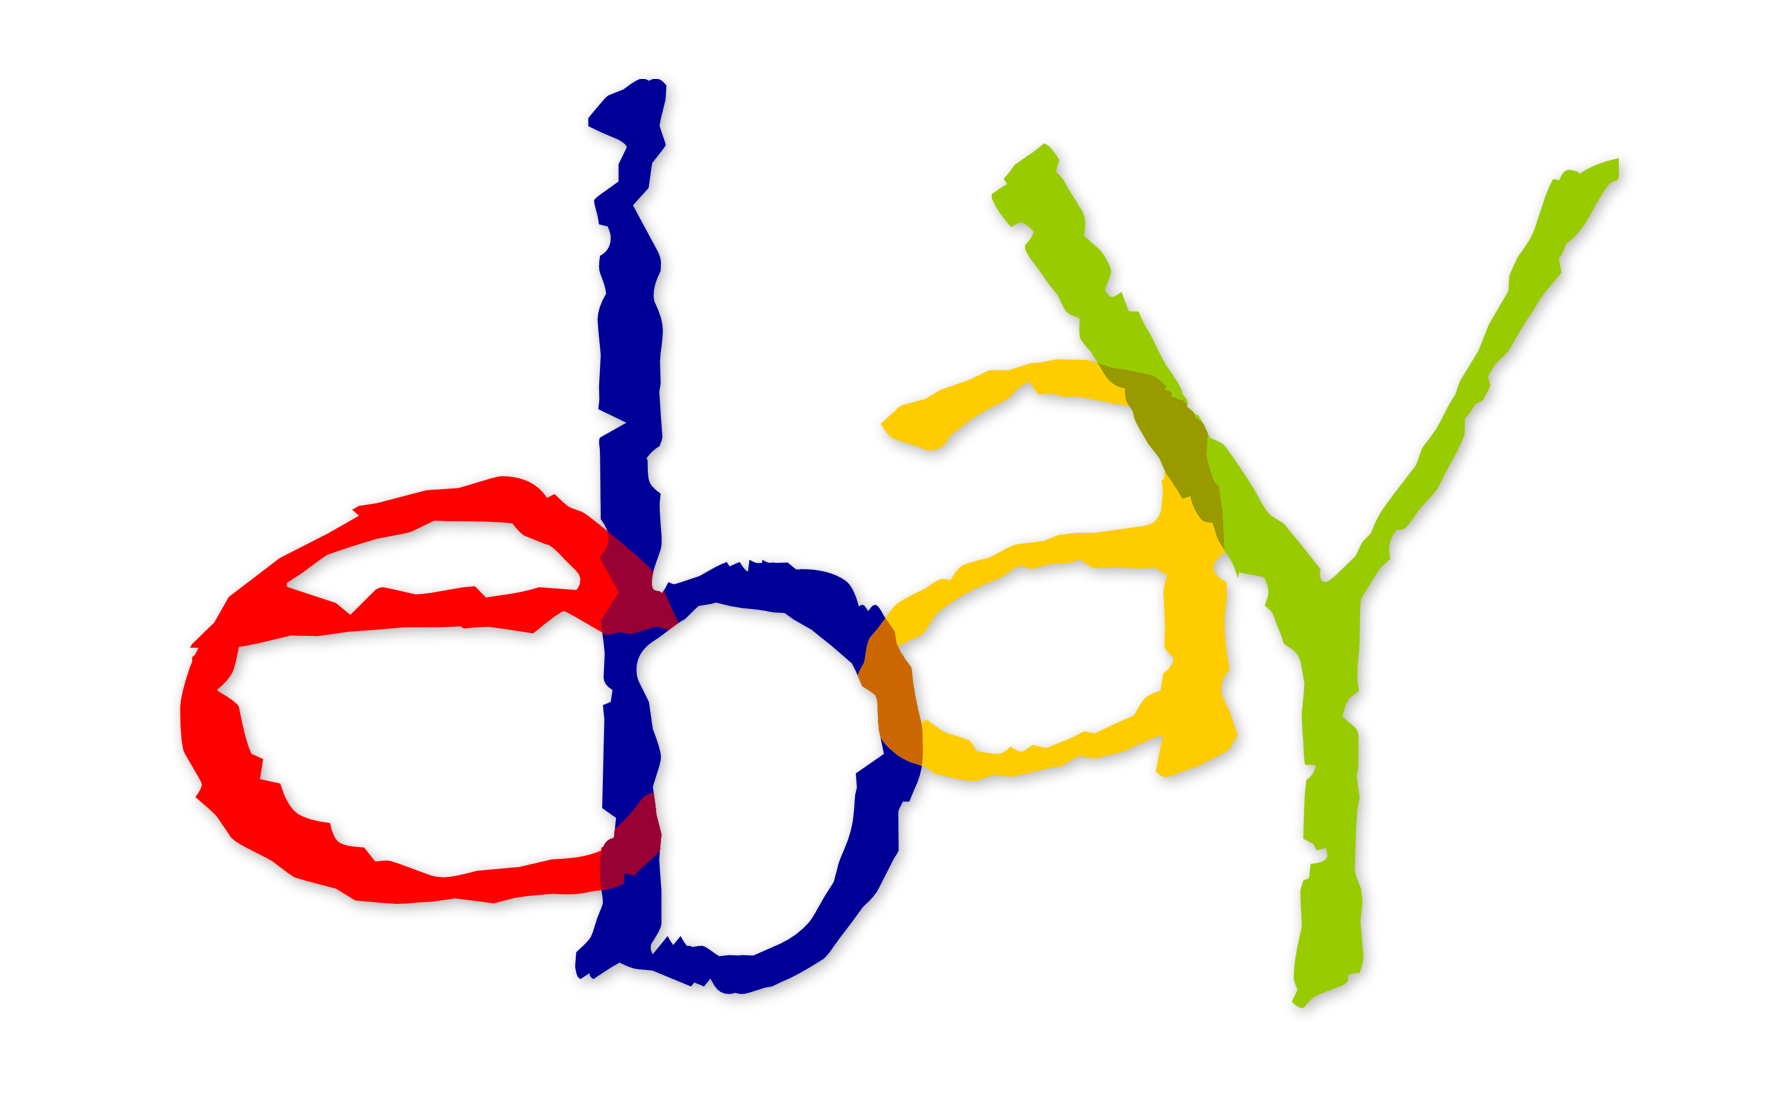 Ebay Png Icon Download image #4595